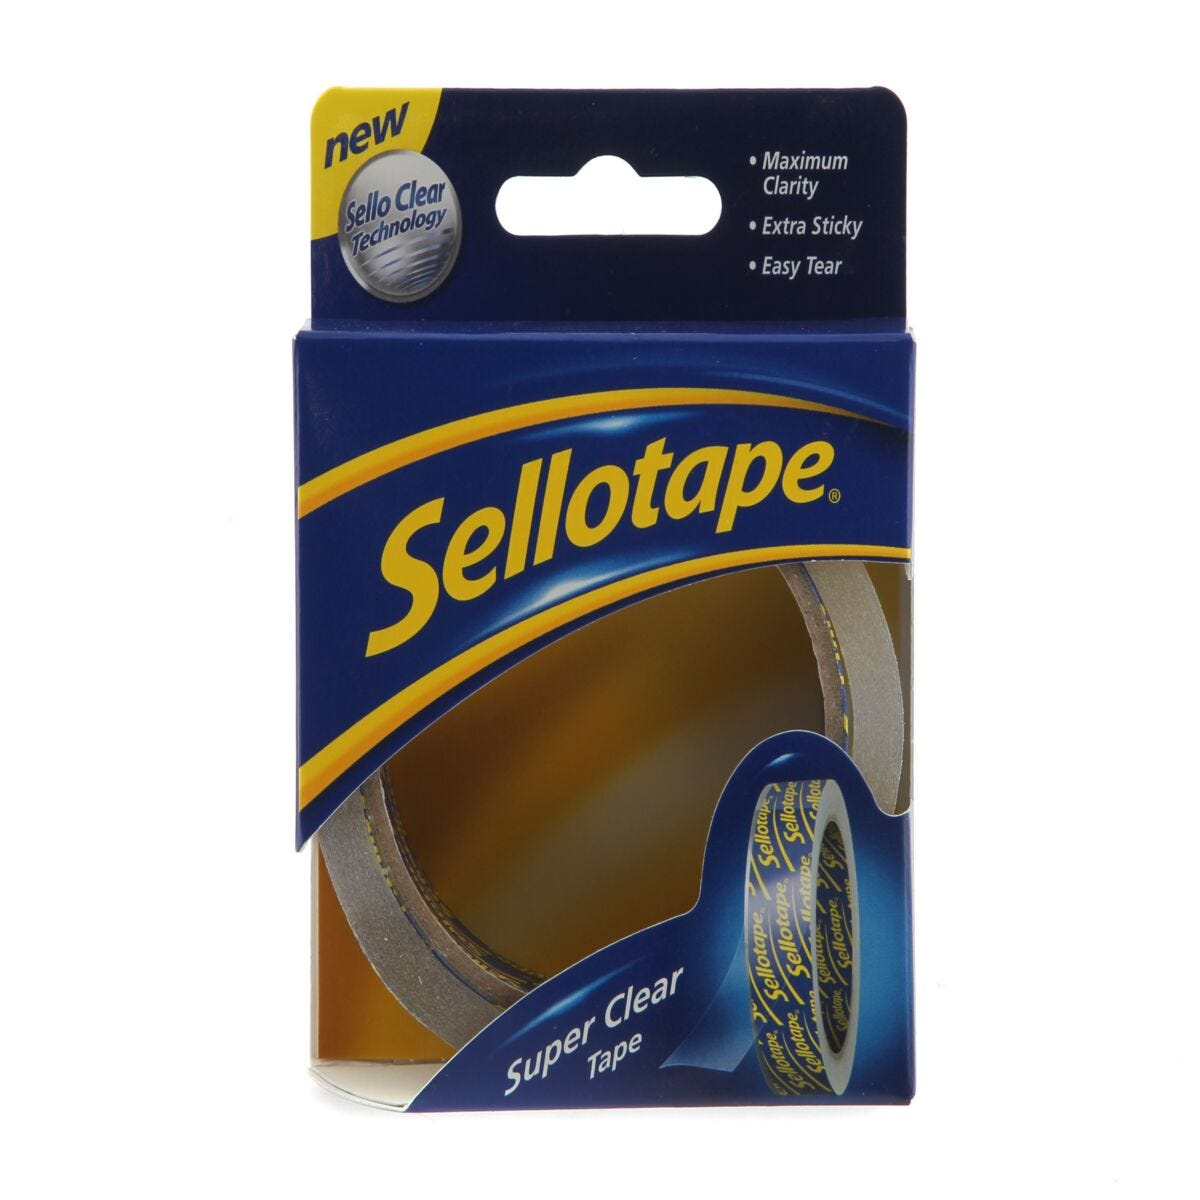 Sellotape Super Clear Roll 24mmx50m